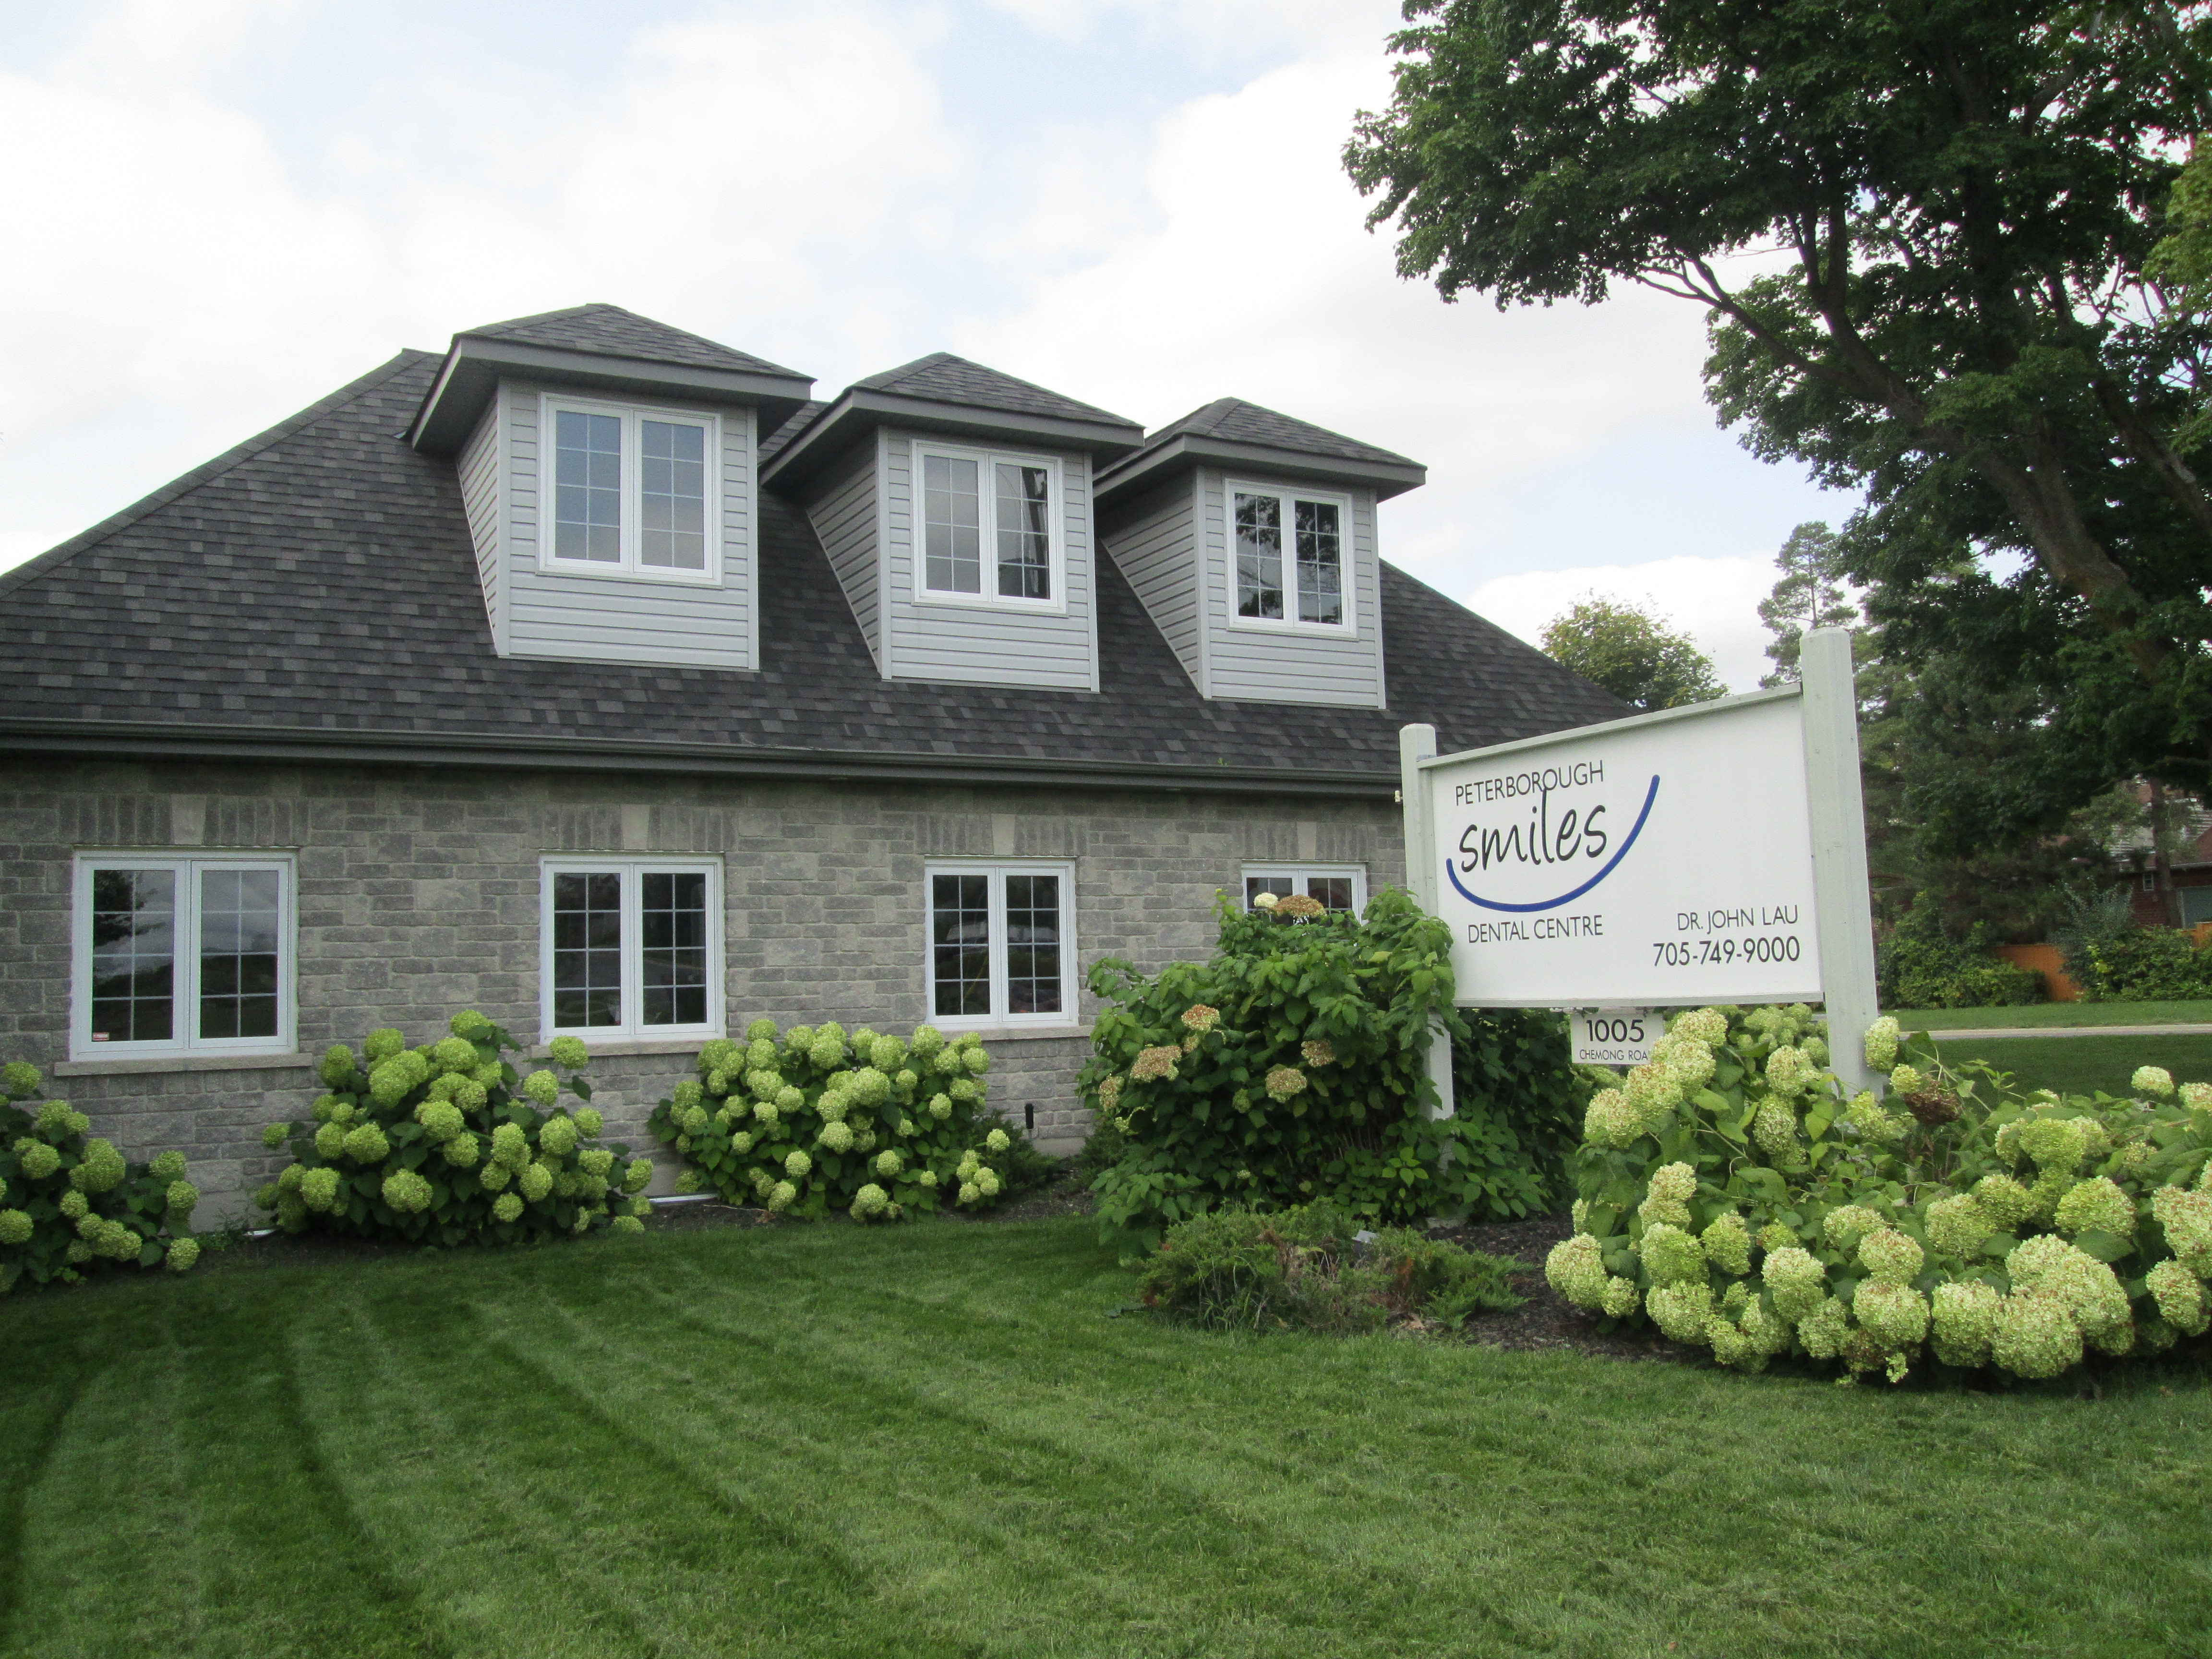 Peterborough Smiles Dental Centre exterior, with our hydrangeas in full bloom.